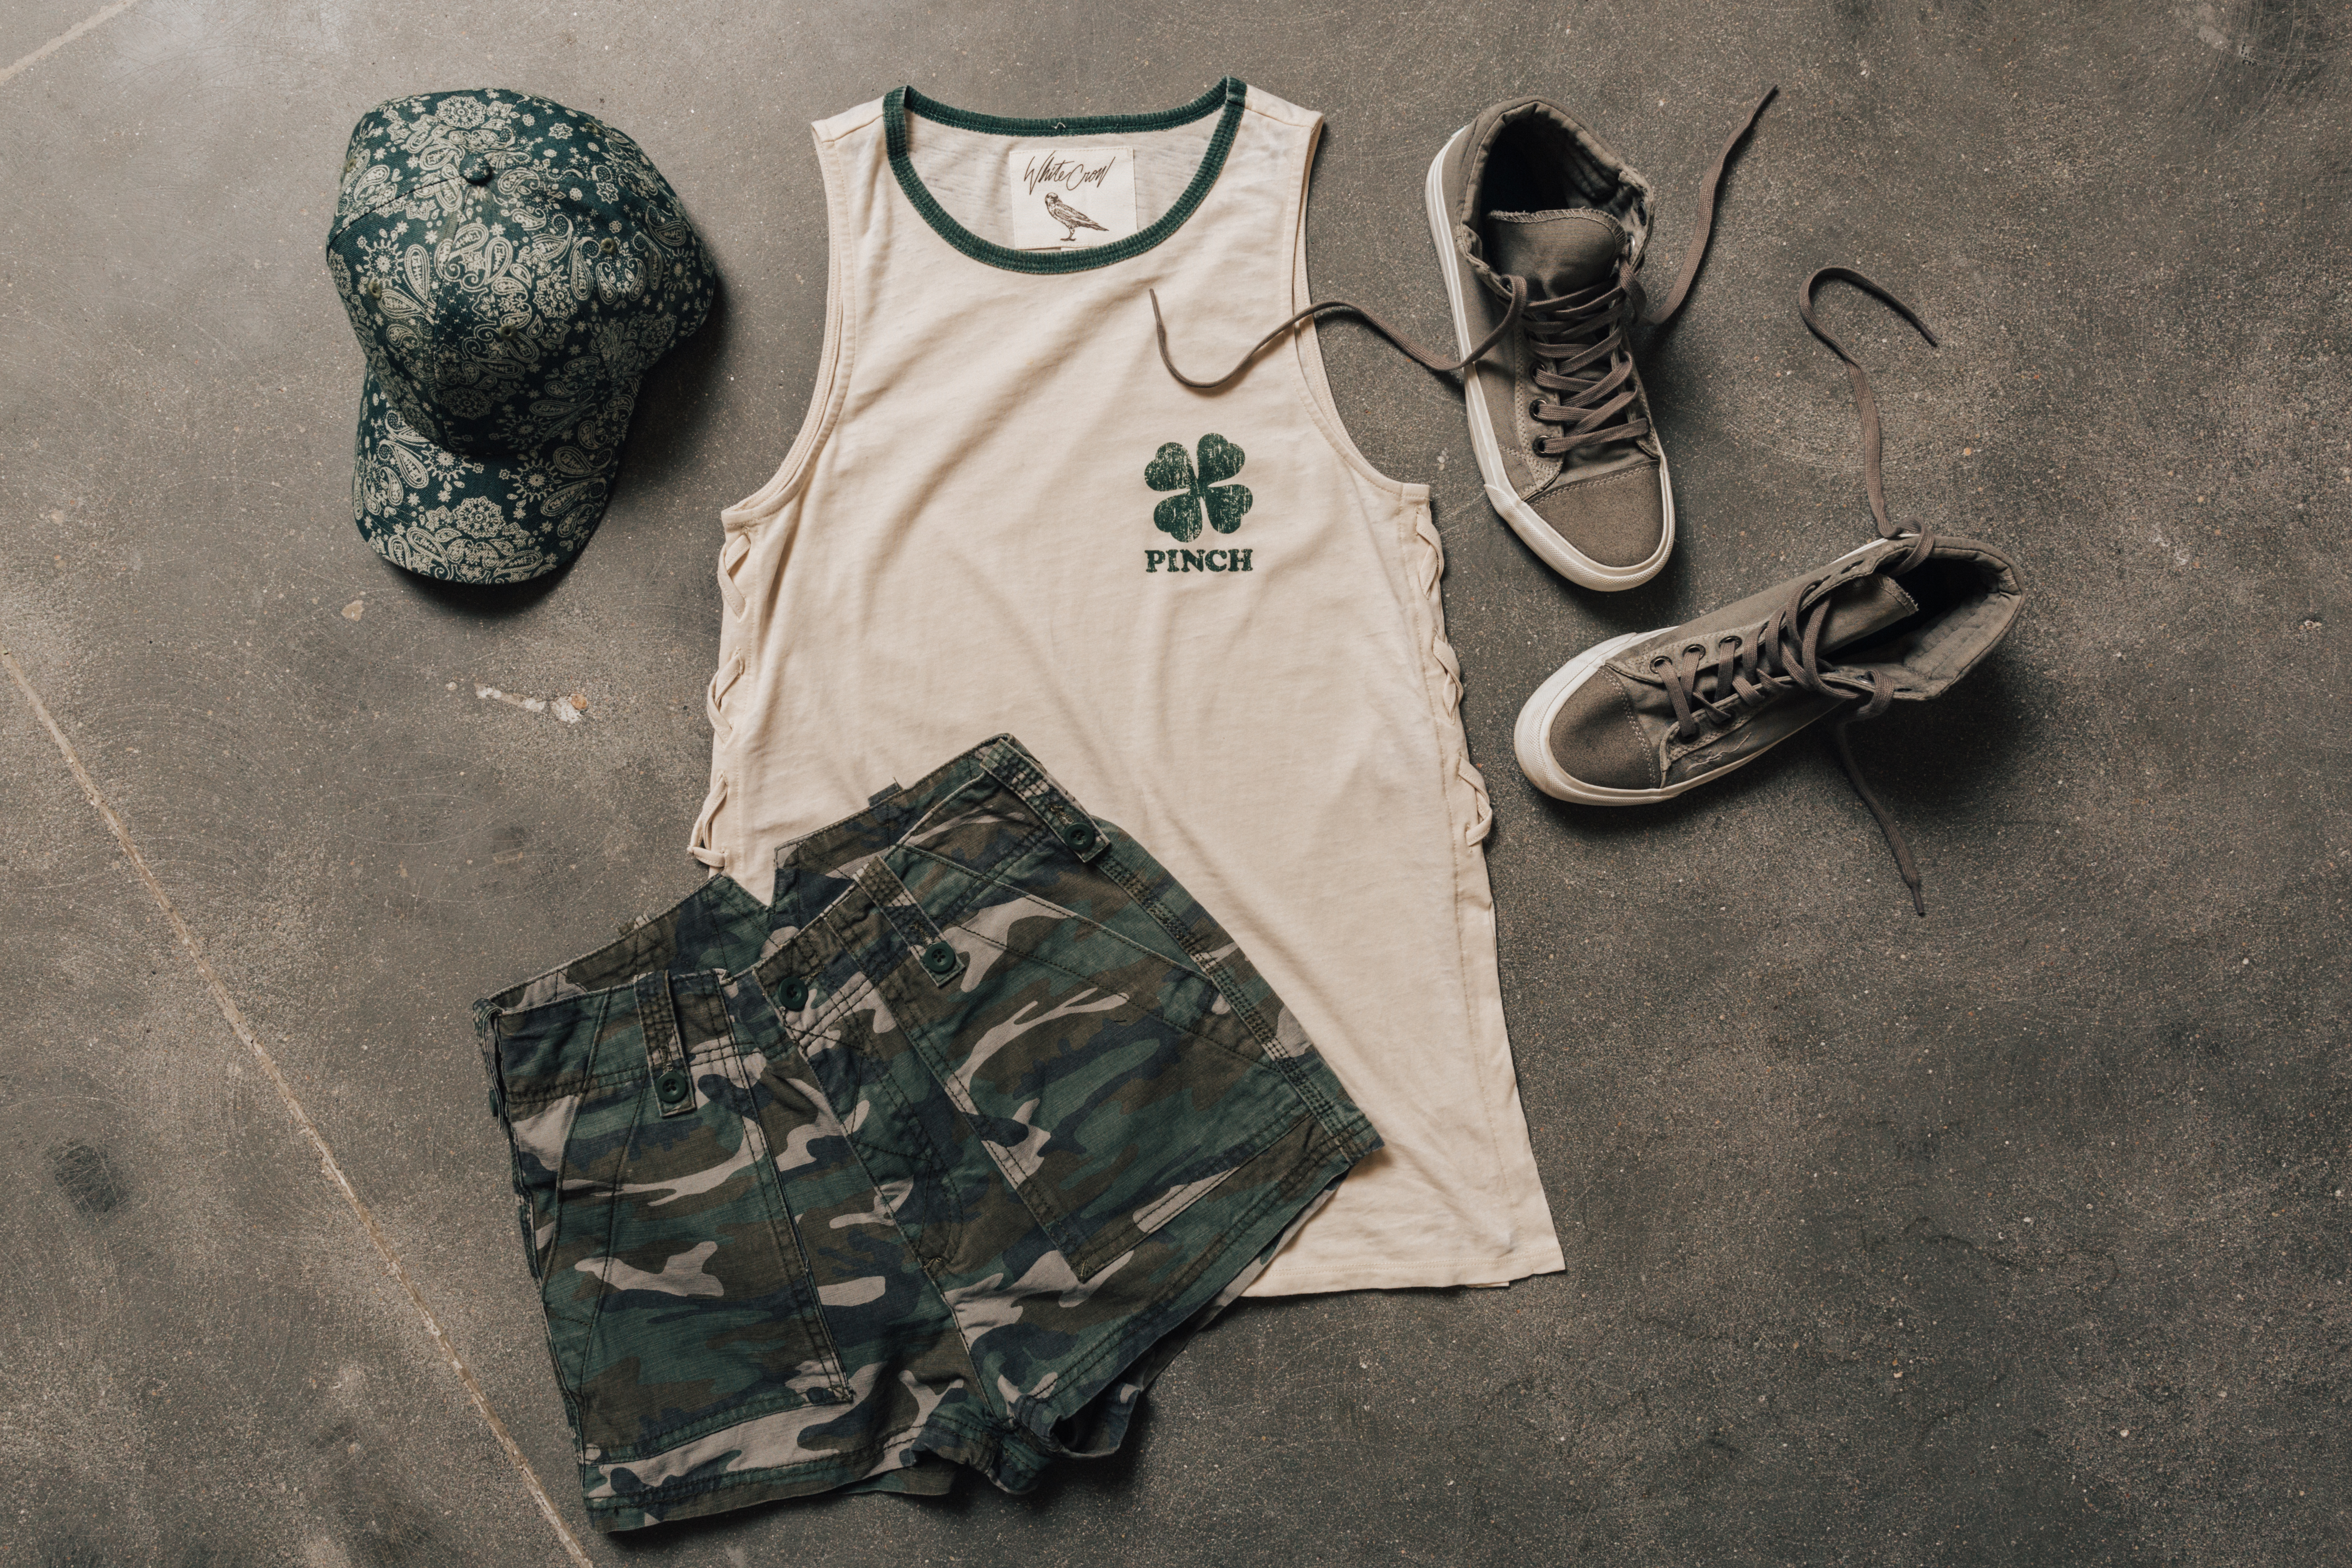 St. Patrick's Day lay down with white and green piped Pinch t-shirt with shamrock detail, camo print Free People shorts, paired with tennis shoes and a green hat.